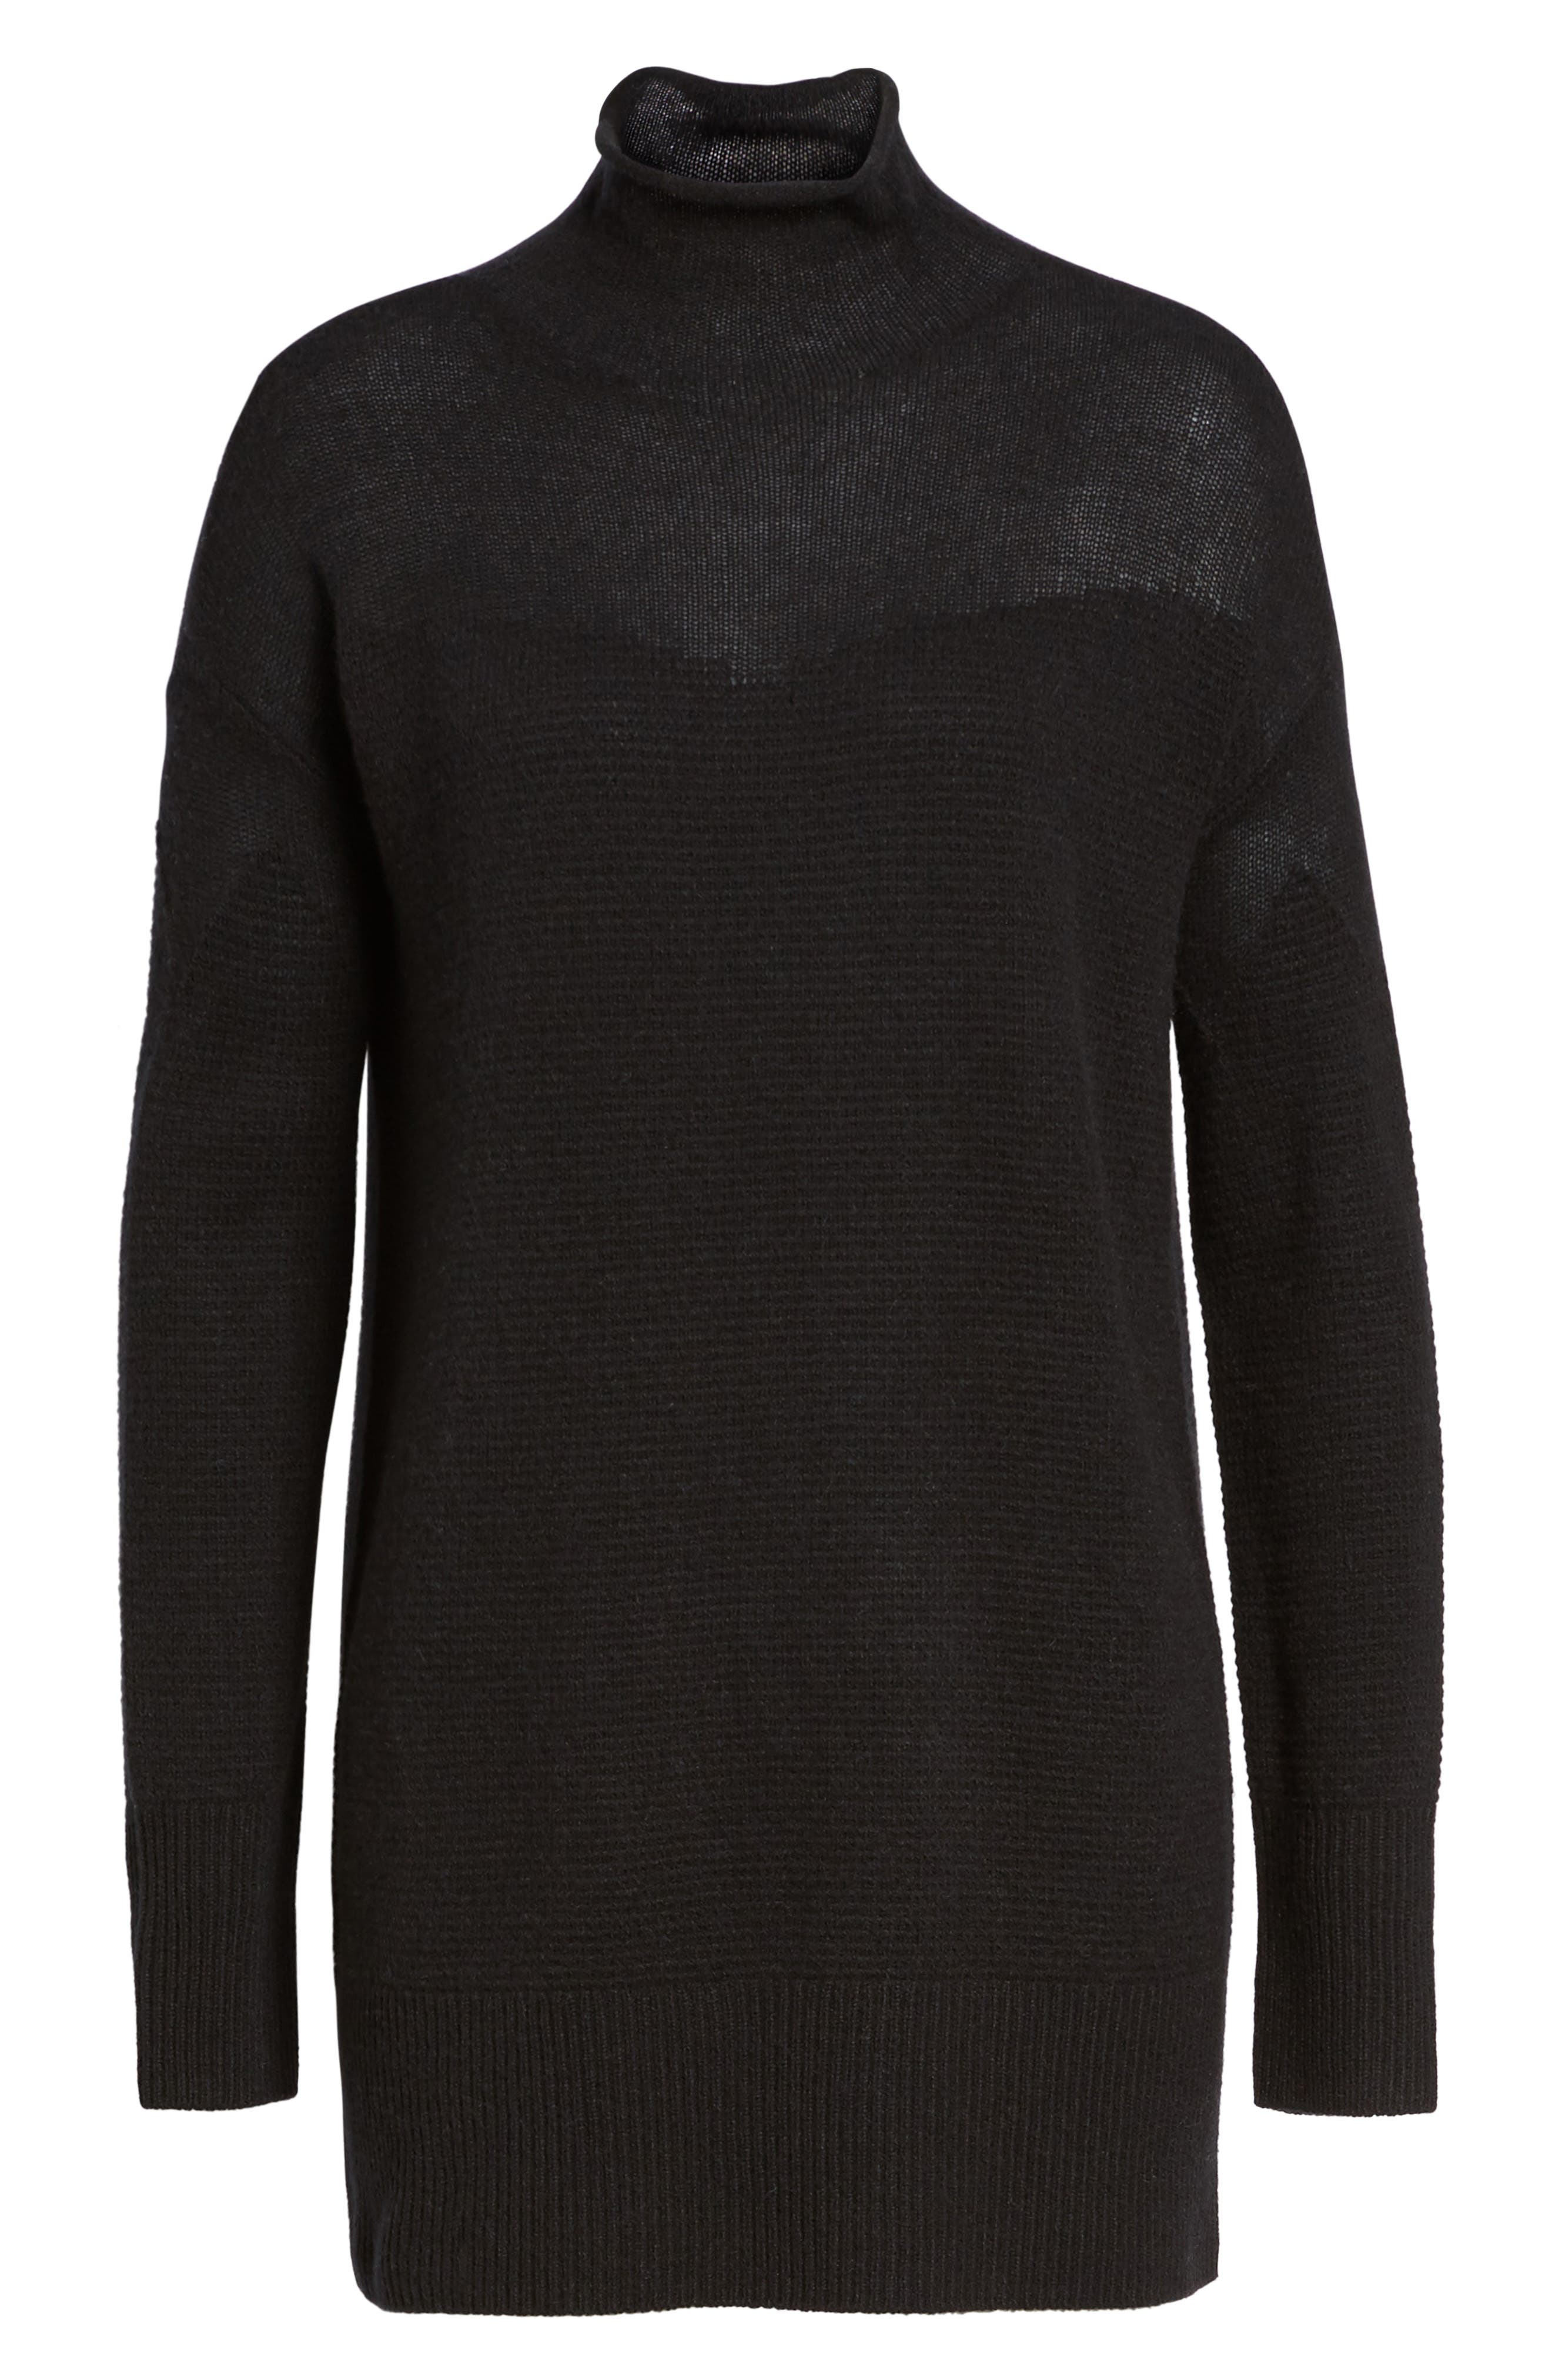 Sheer Yoke Cashmere Sweater,                             Alternate thumbnail 6, color,                             Black